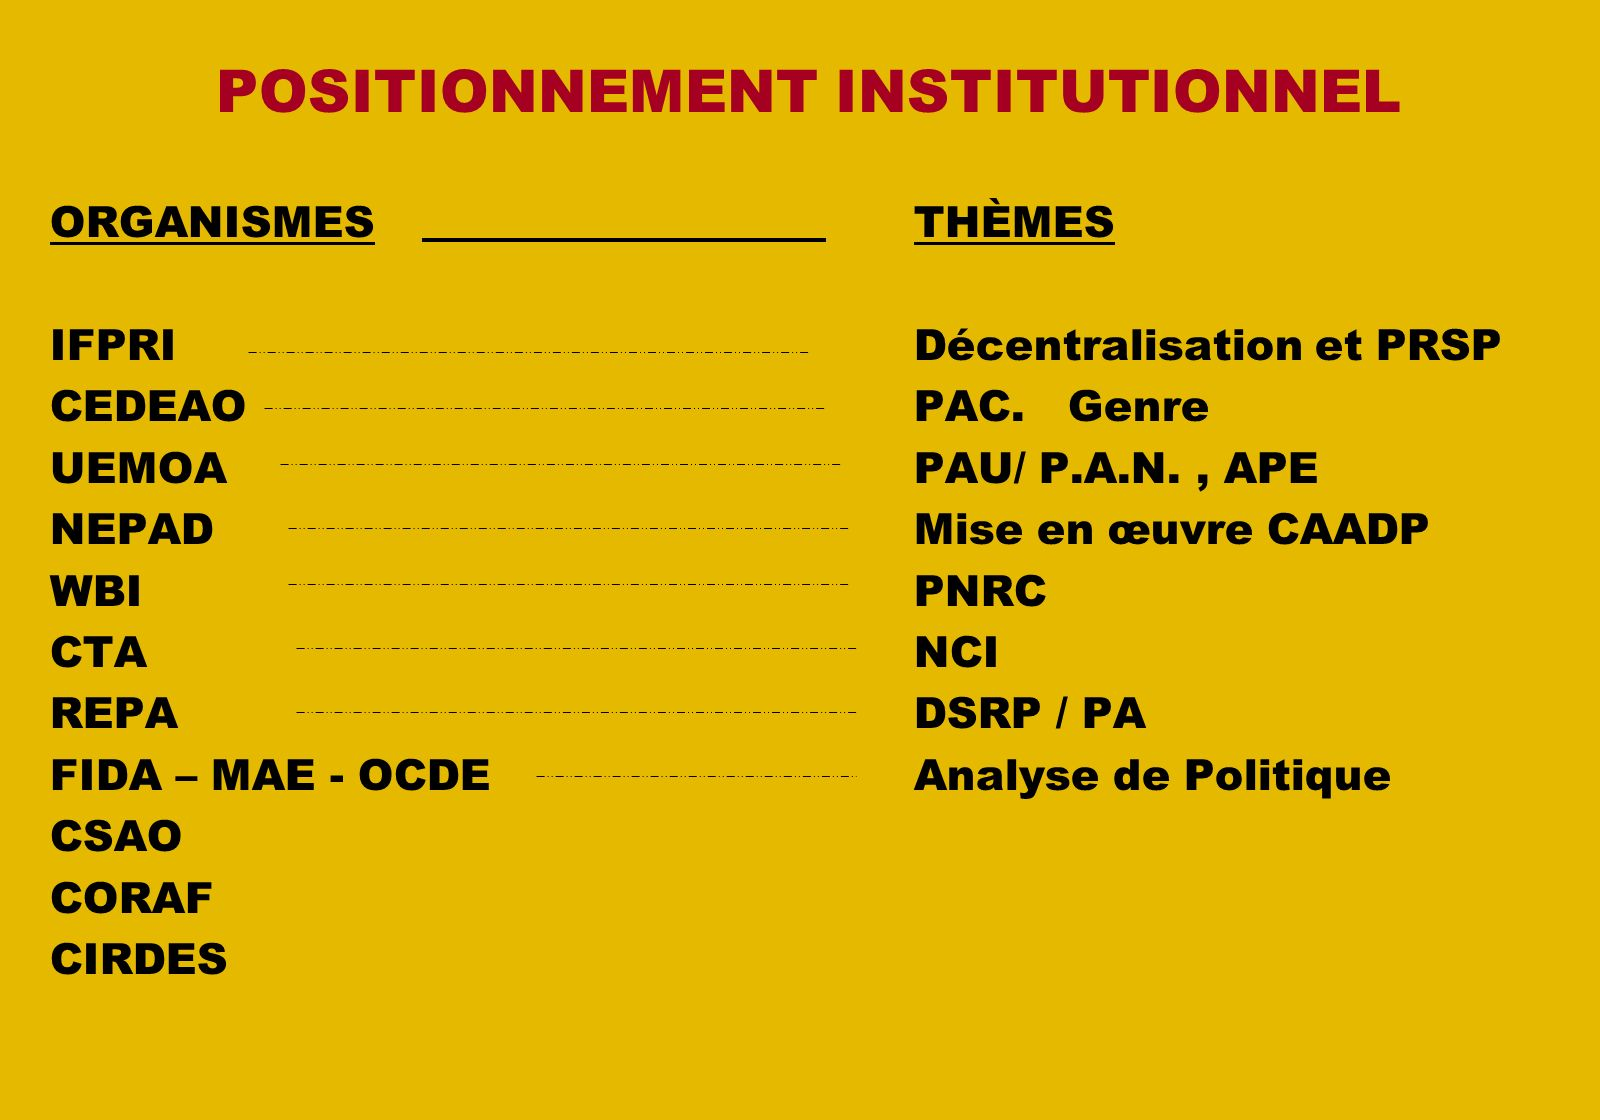 POSITIONNEMENT INSTITUTIONNEL ORGANISMESTHÈMES IFPRIDécentralisation et PRSP CEDEAOPAC.